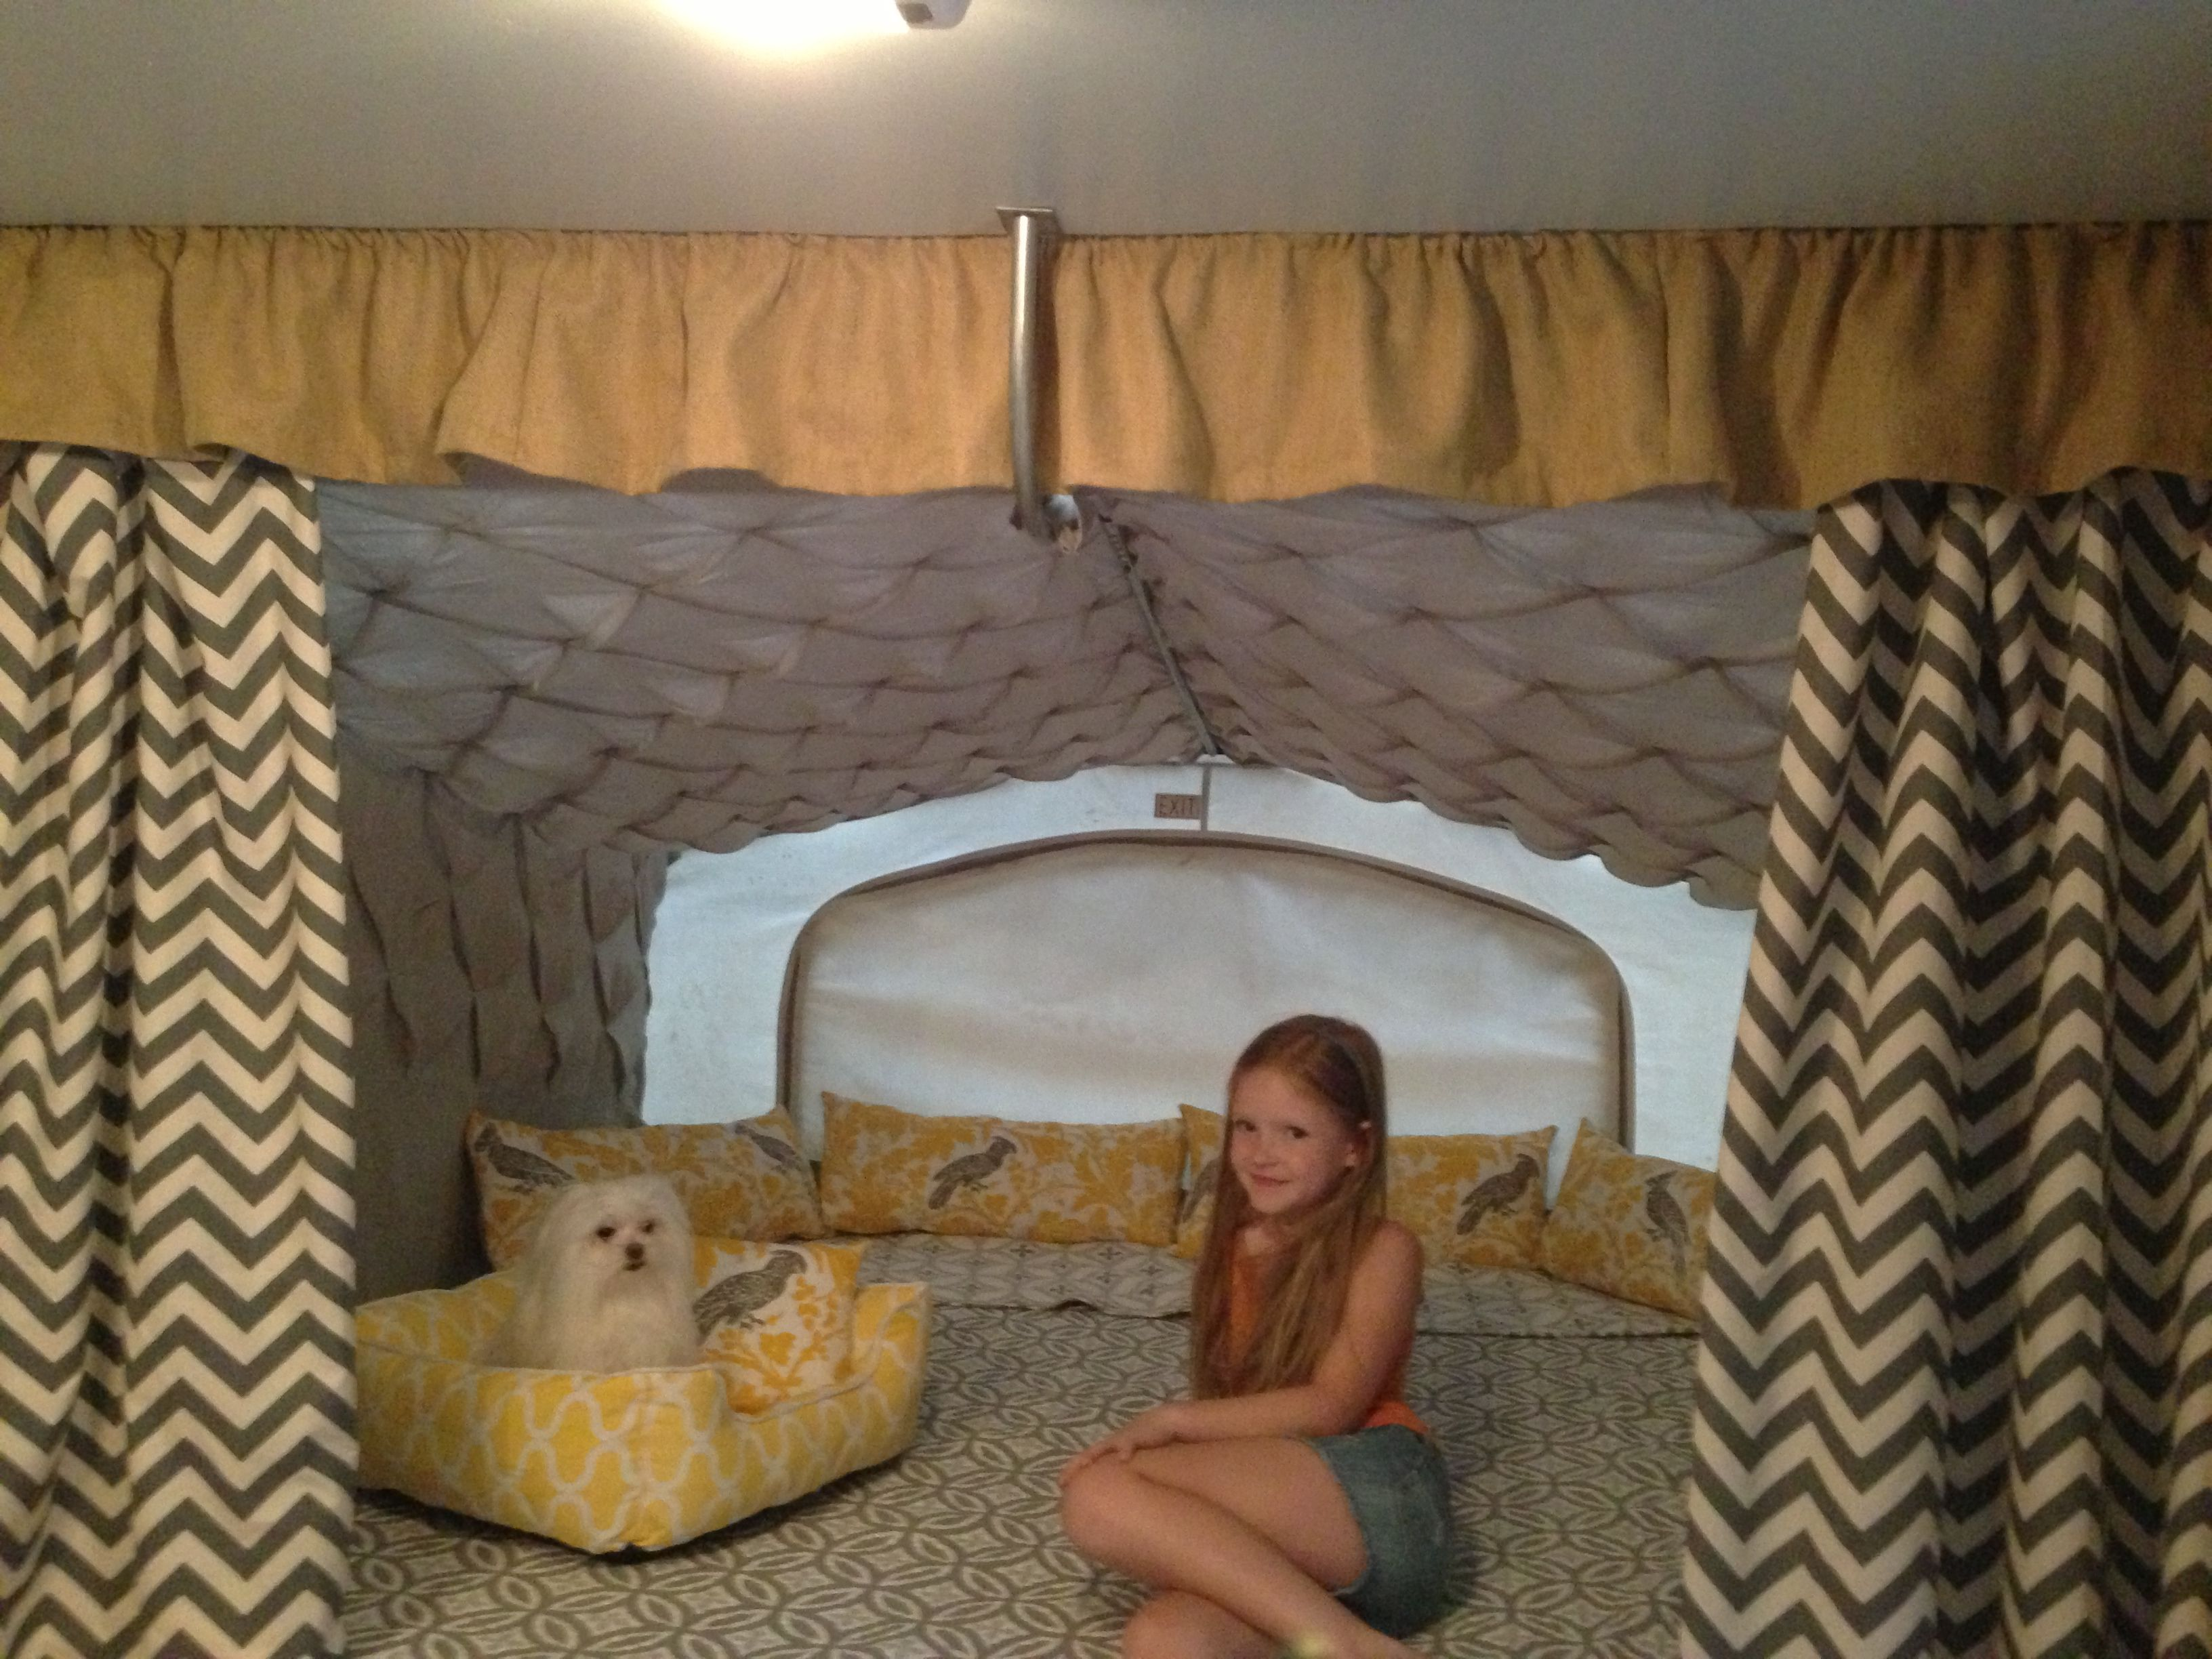 Pop Up Camper Make Over  King Size Bed. Pop Up Camper Make Over  King Size Bed    Pop Up Camper